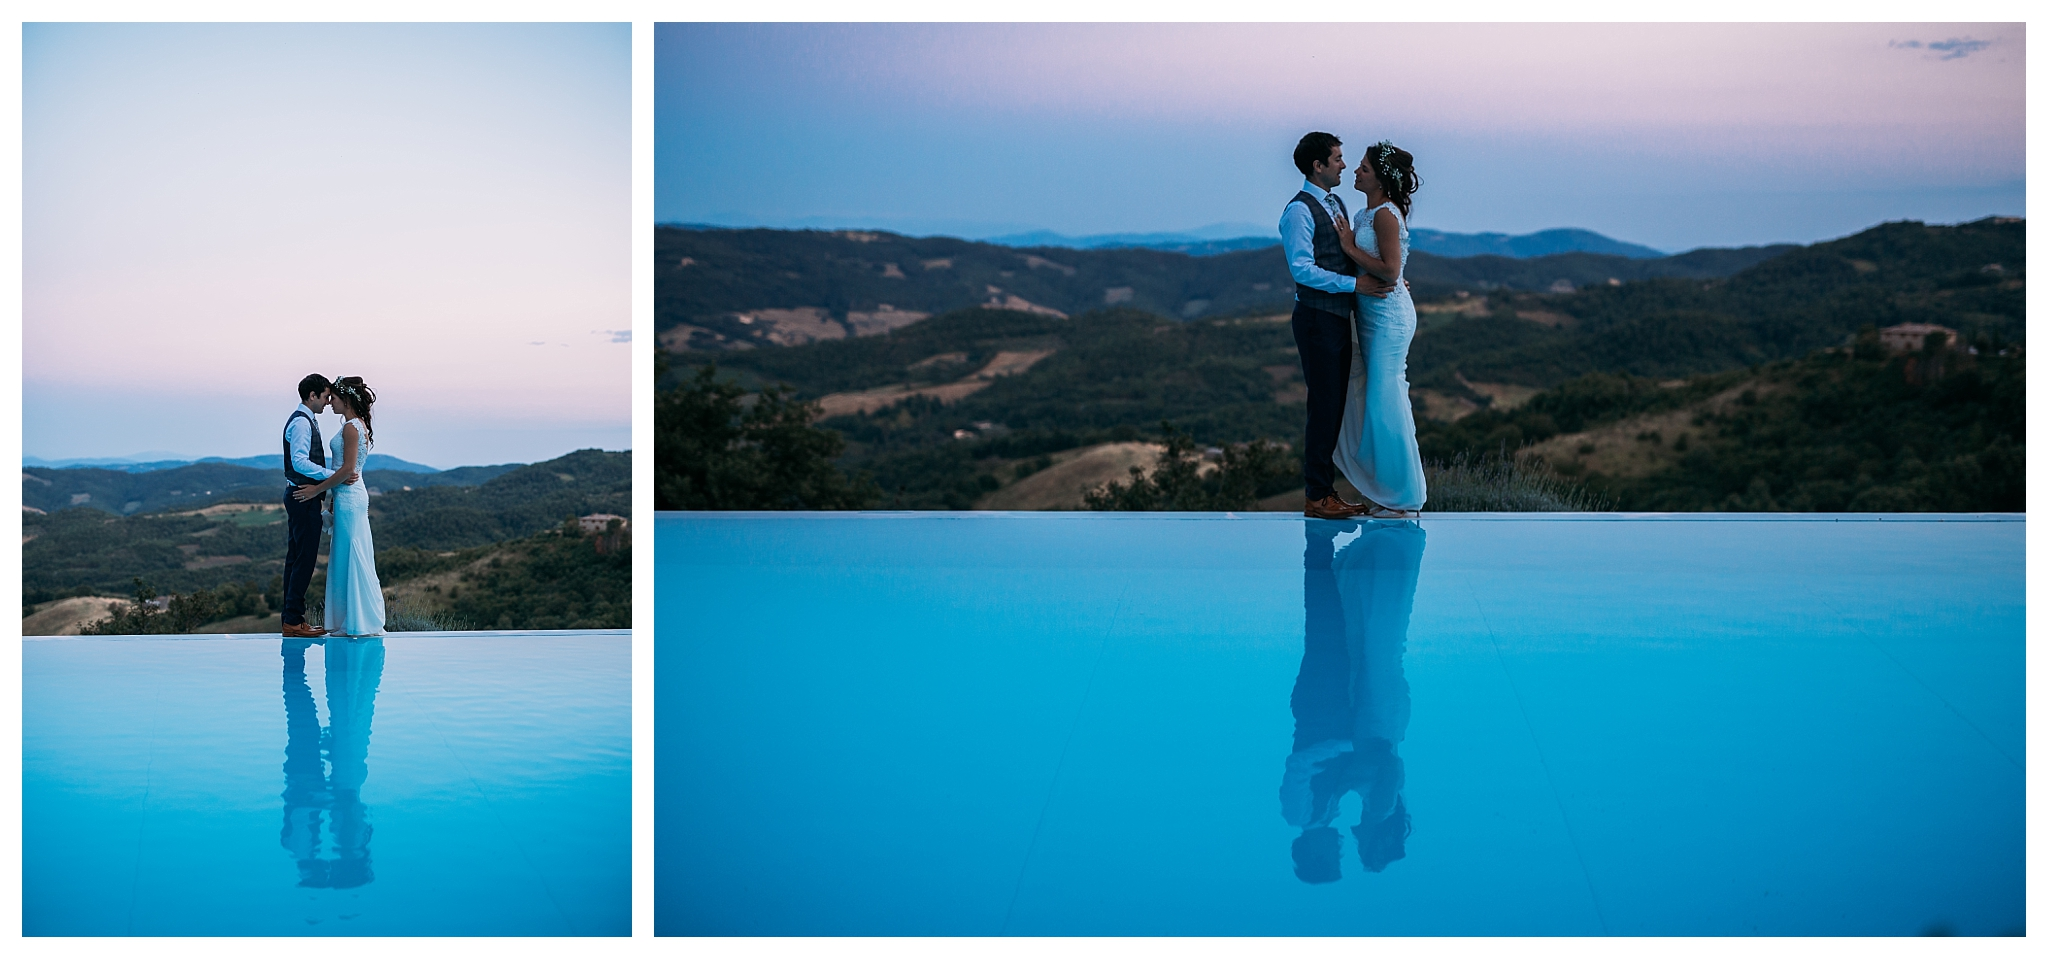 Pool photos at wedding in Italy